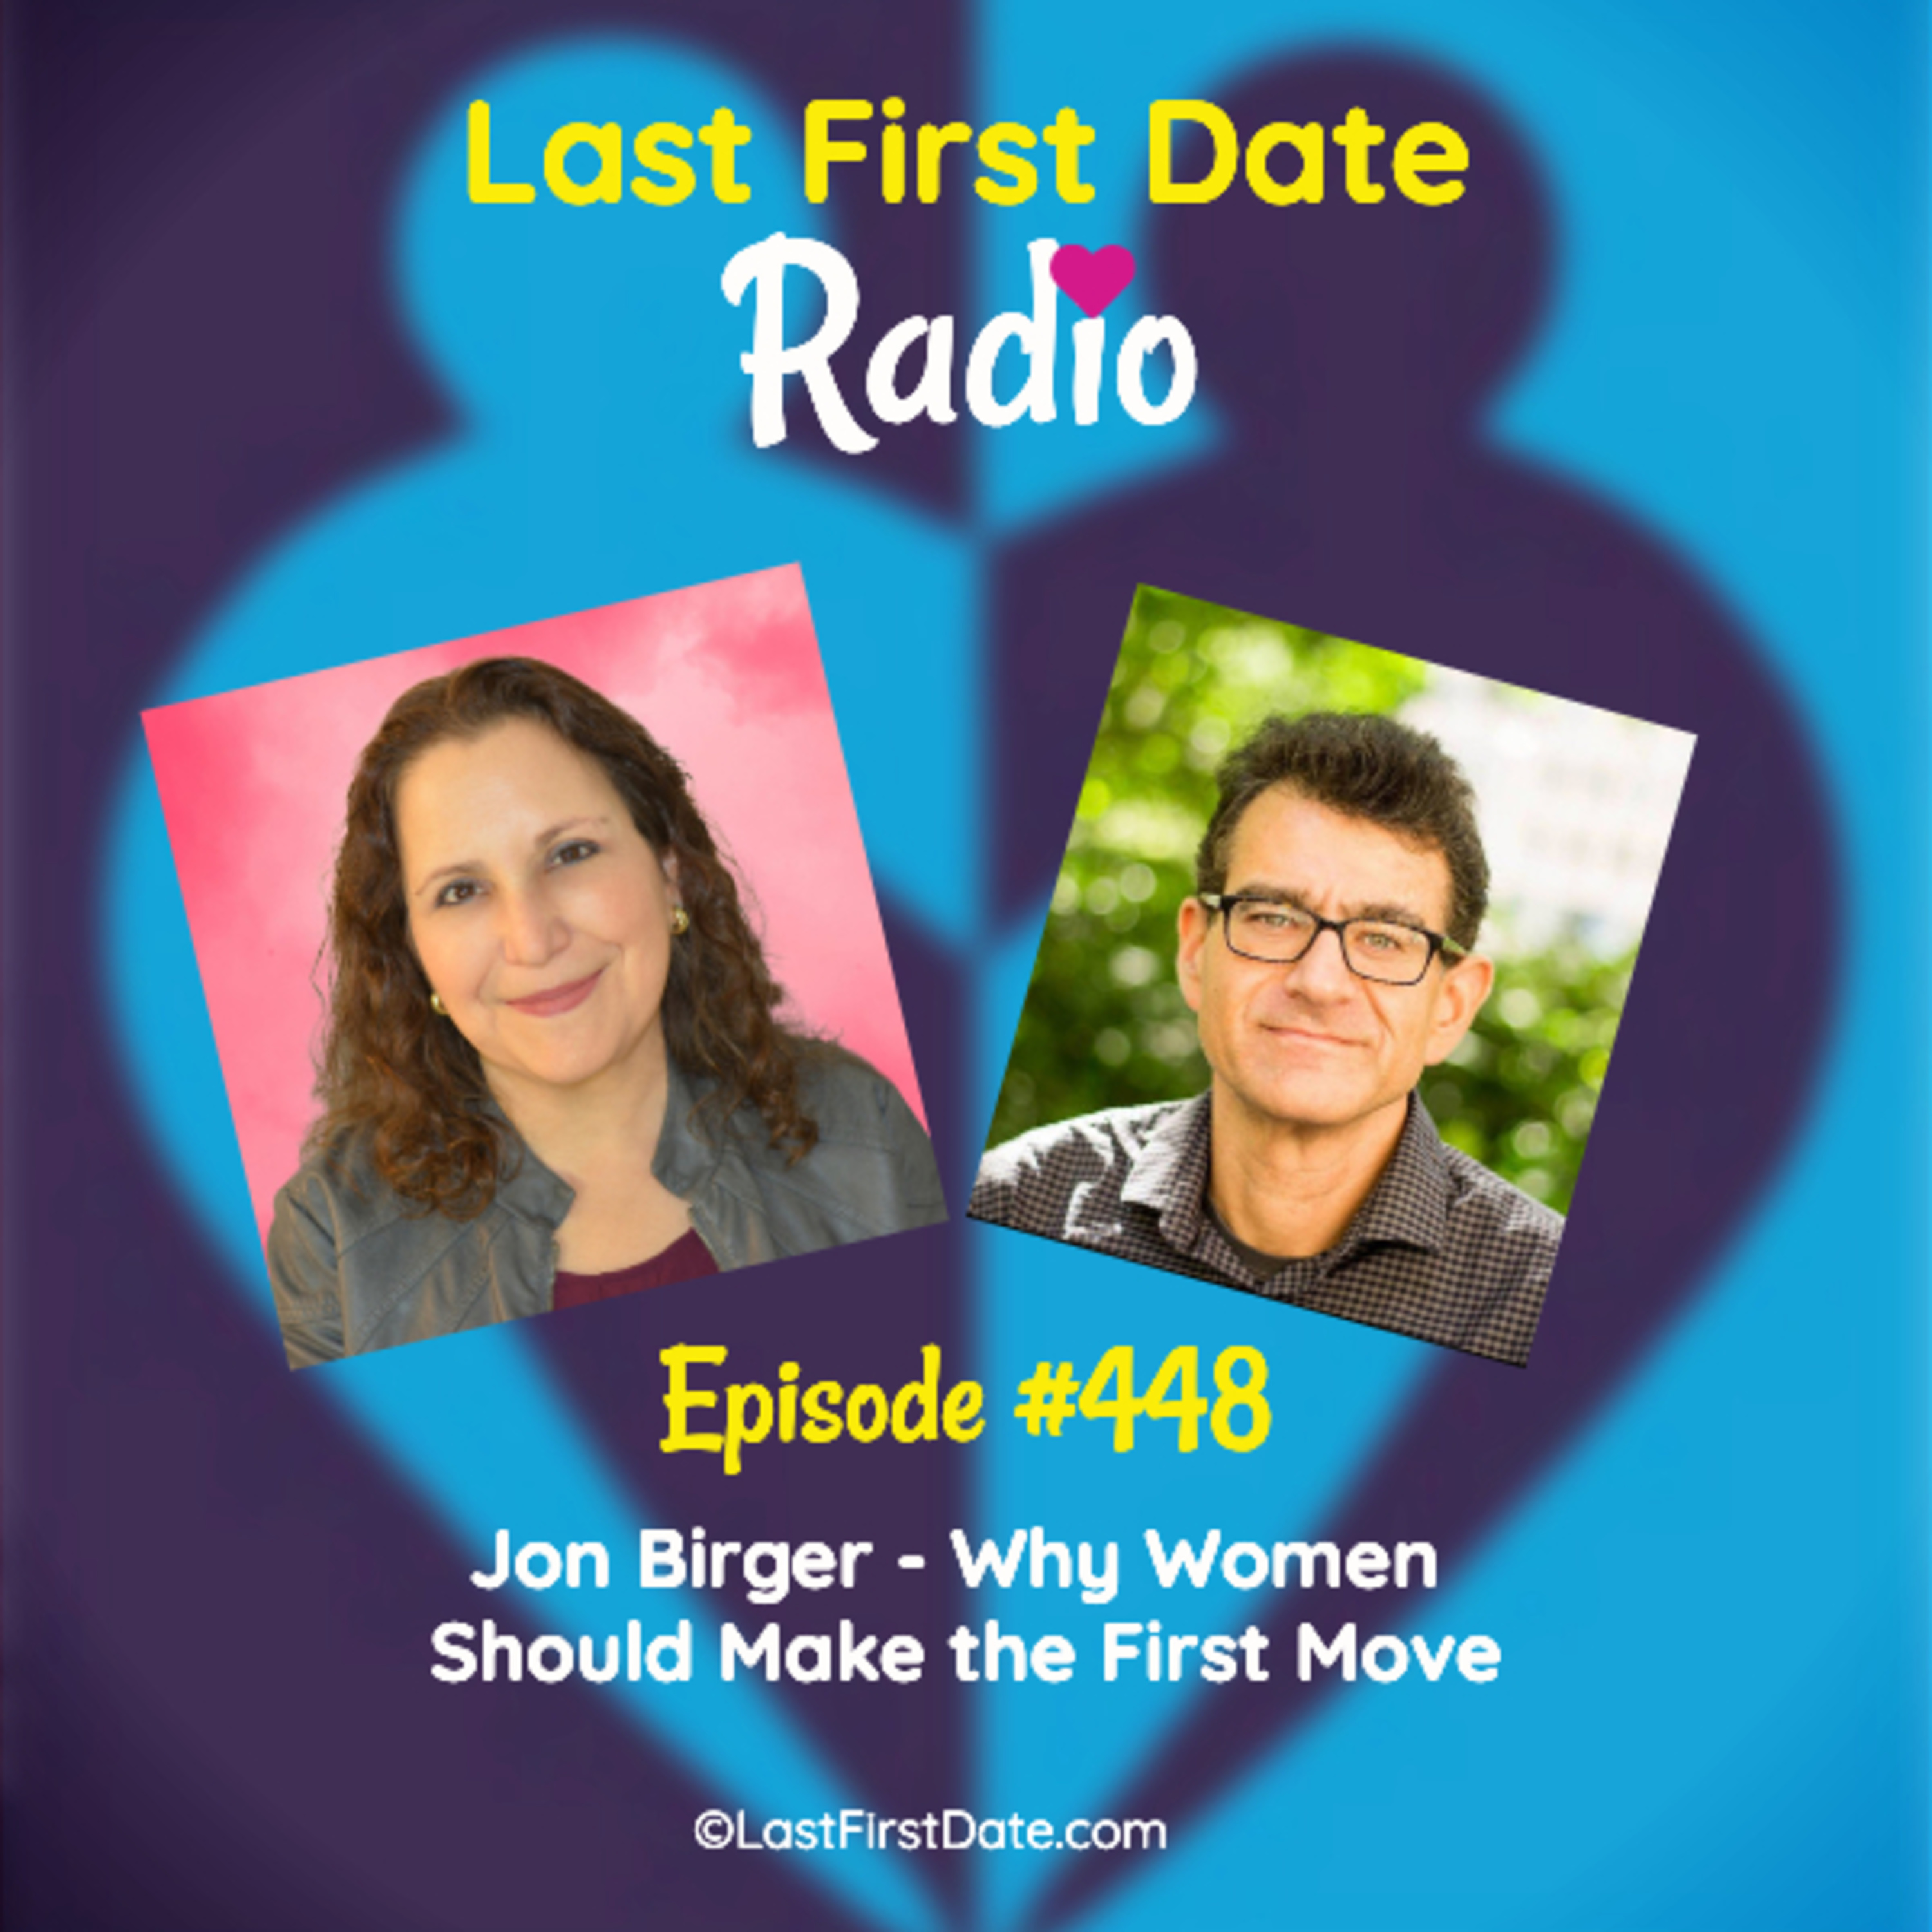 Last First Date Radio - EP 448: Jon Birger - Why Women Should Make the First Move